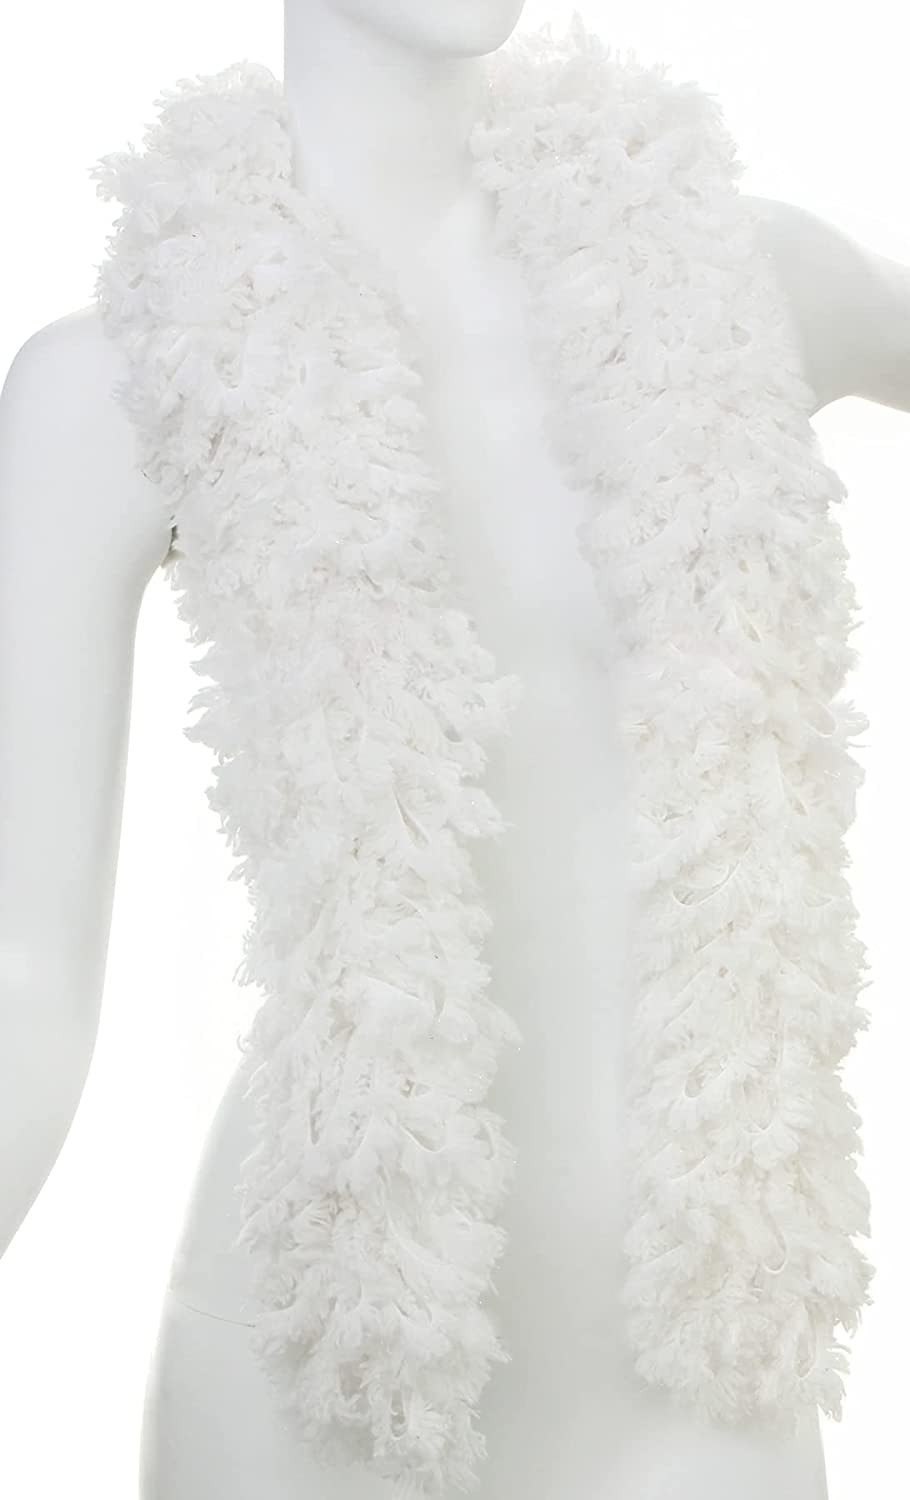 Featherless Super-Sized Faux Feather Boa Made U.S. Max 46% OFF of Yarn P Ranking TOP7 -